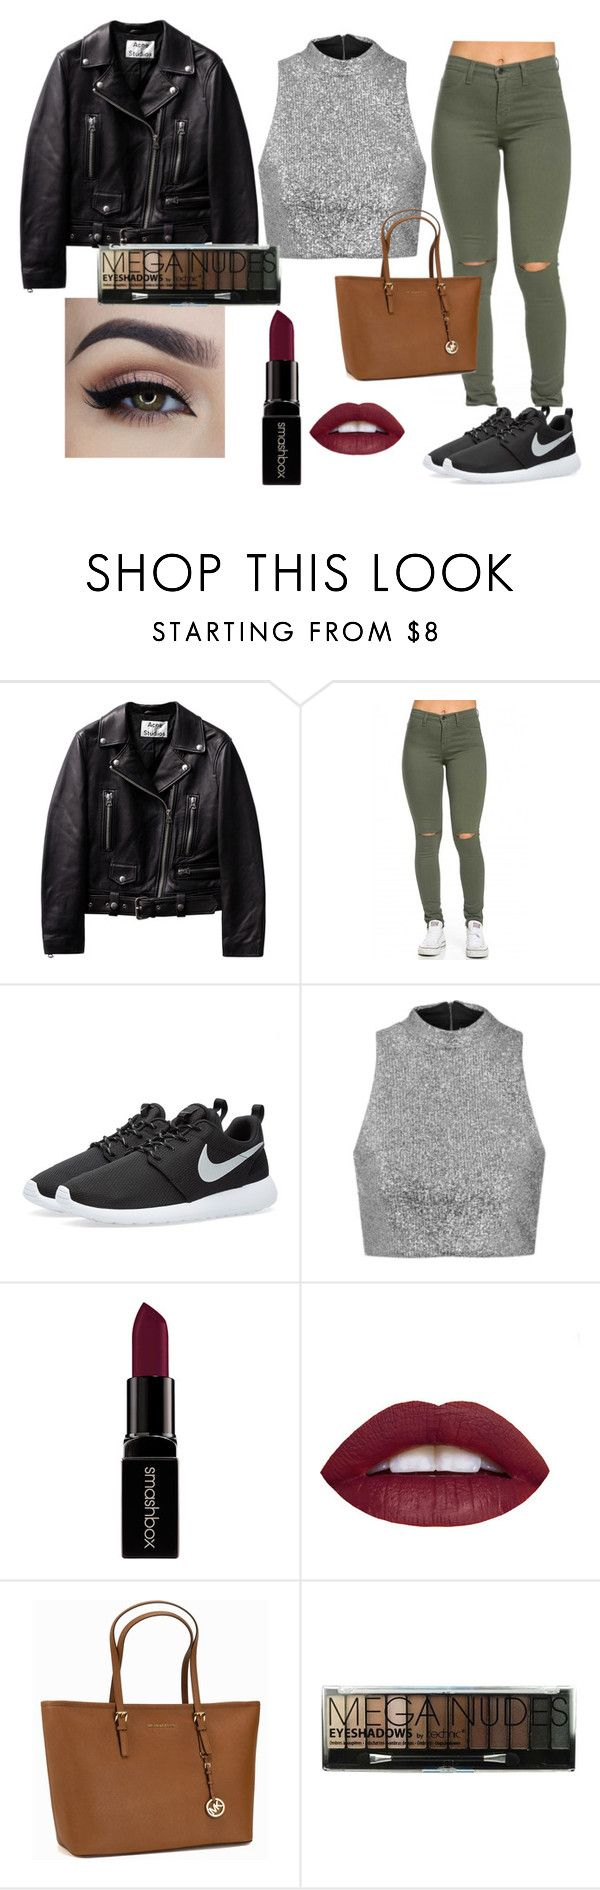 """""""don't tuch, you'll get burned #hot"""" by klara-kandare ❤ liked on Polyvore featuring NIKE, Topshop, Smashbox, MICHAEL Michael Kors, Boohoo, women's clothing, women, female, woman and misses"""